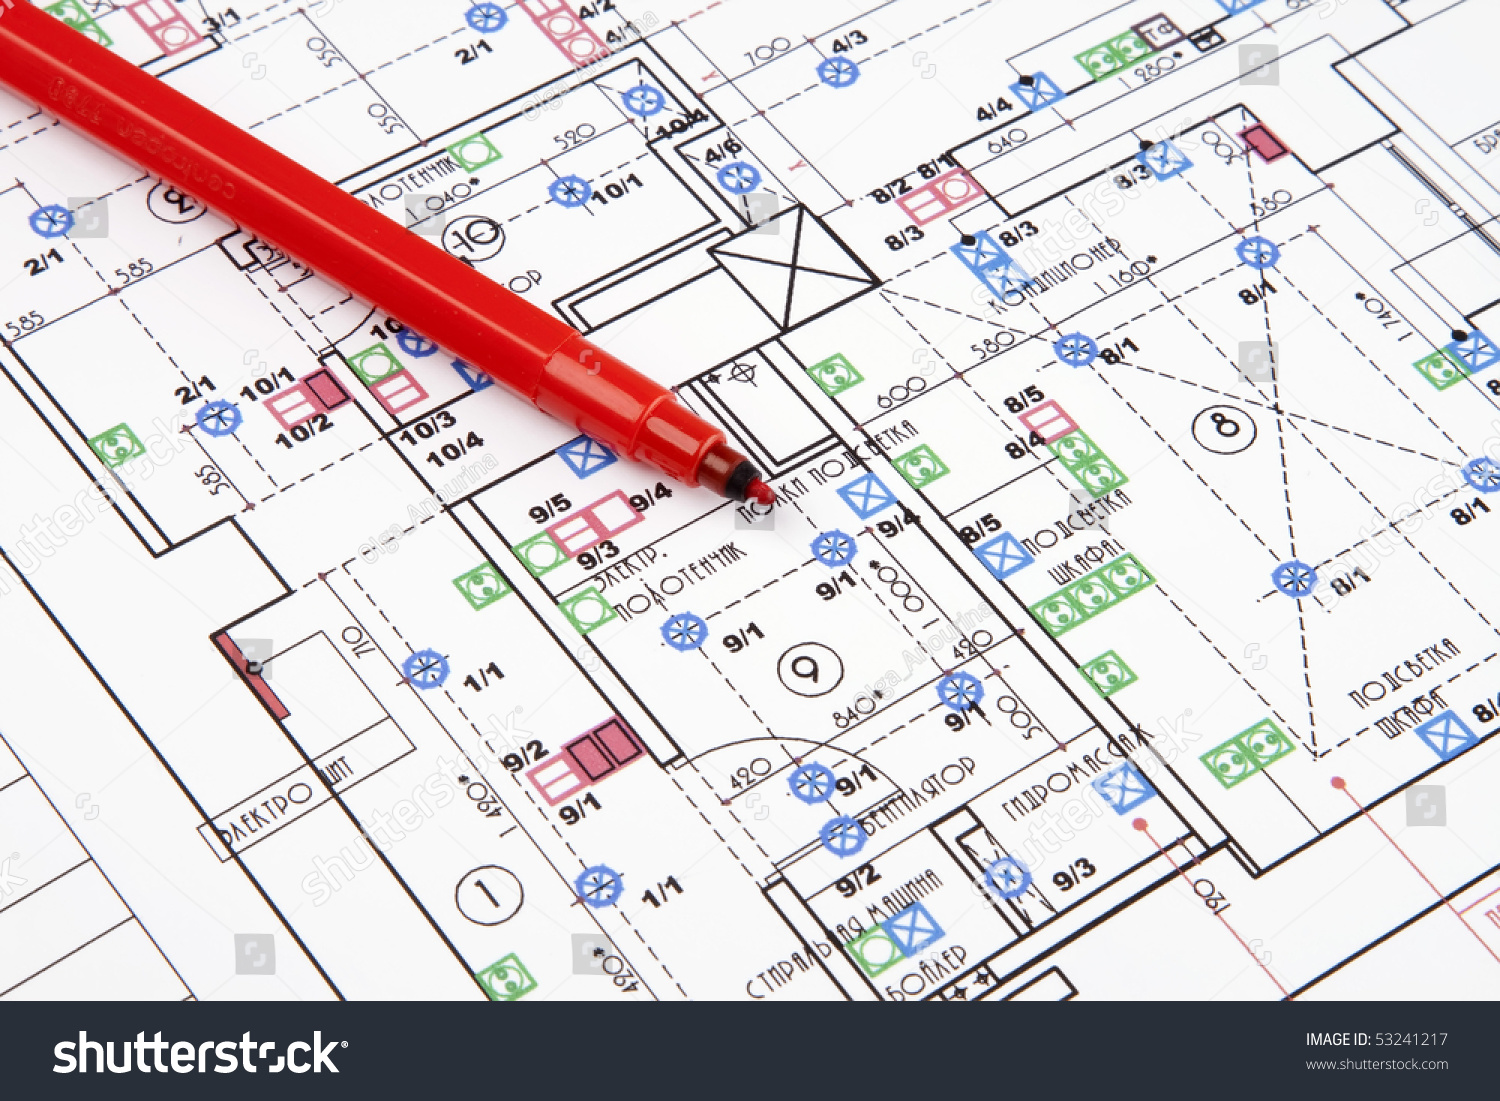 Electrical drawing house stock photo royalty free 53241217 electrical drawing of house ccuart Gallery